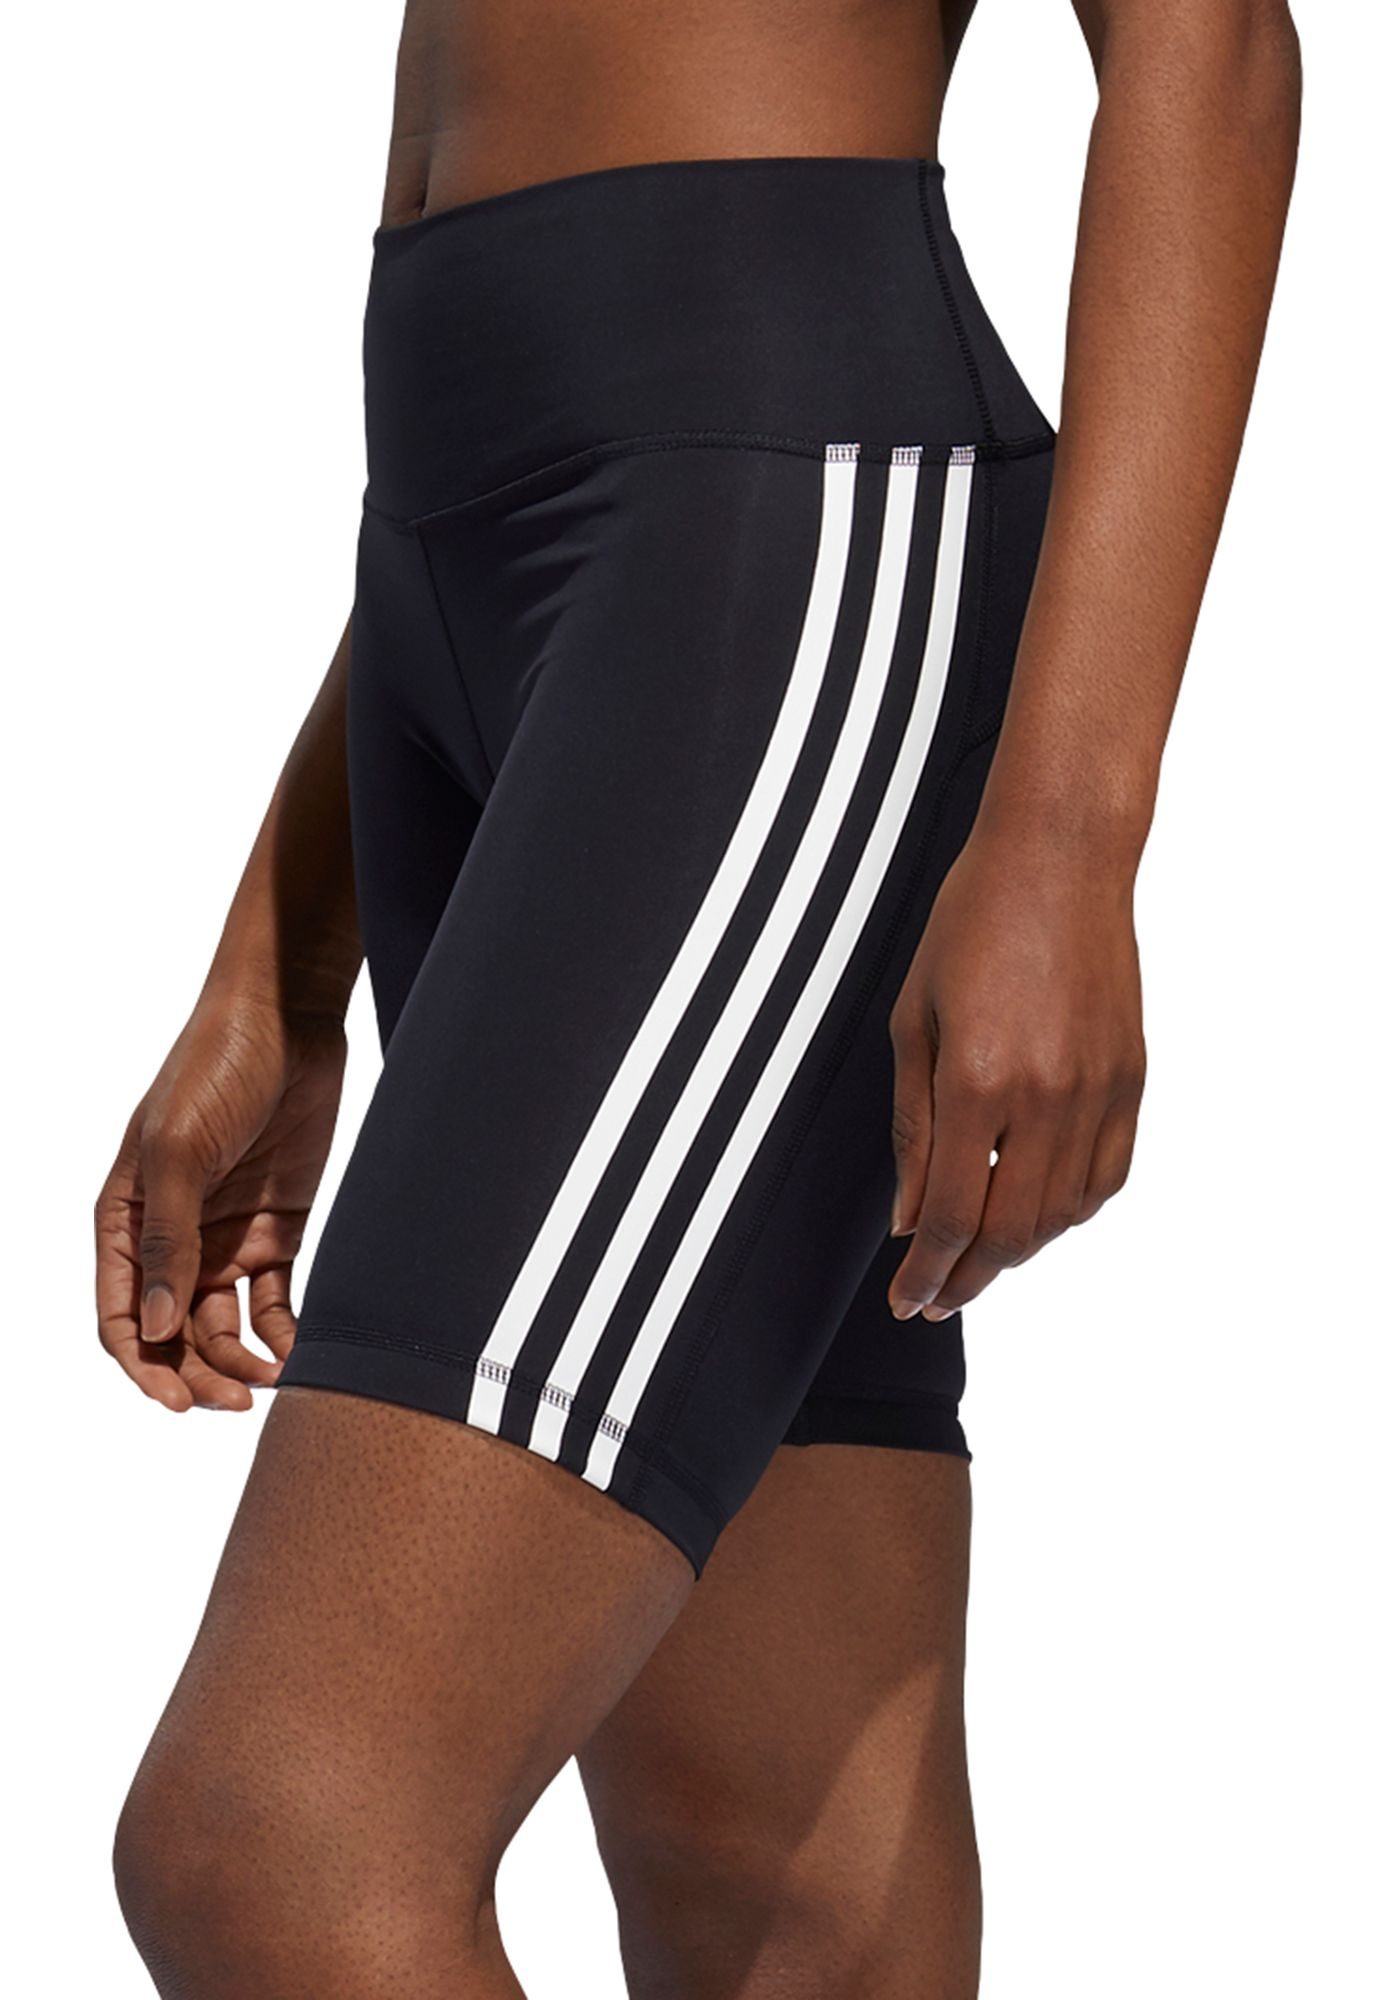 adidas Women's Believe This High Rise 3 Stripe Biker Shorts